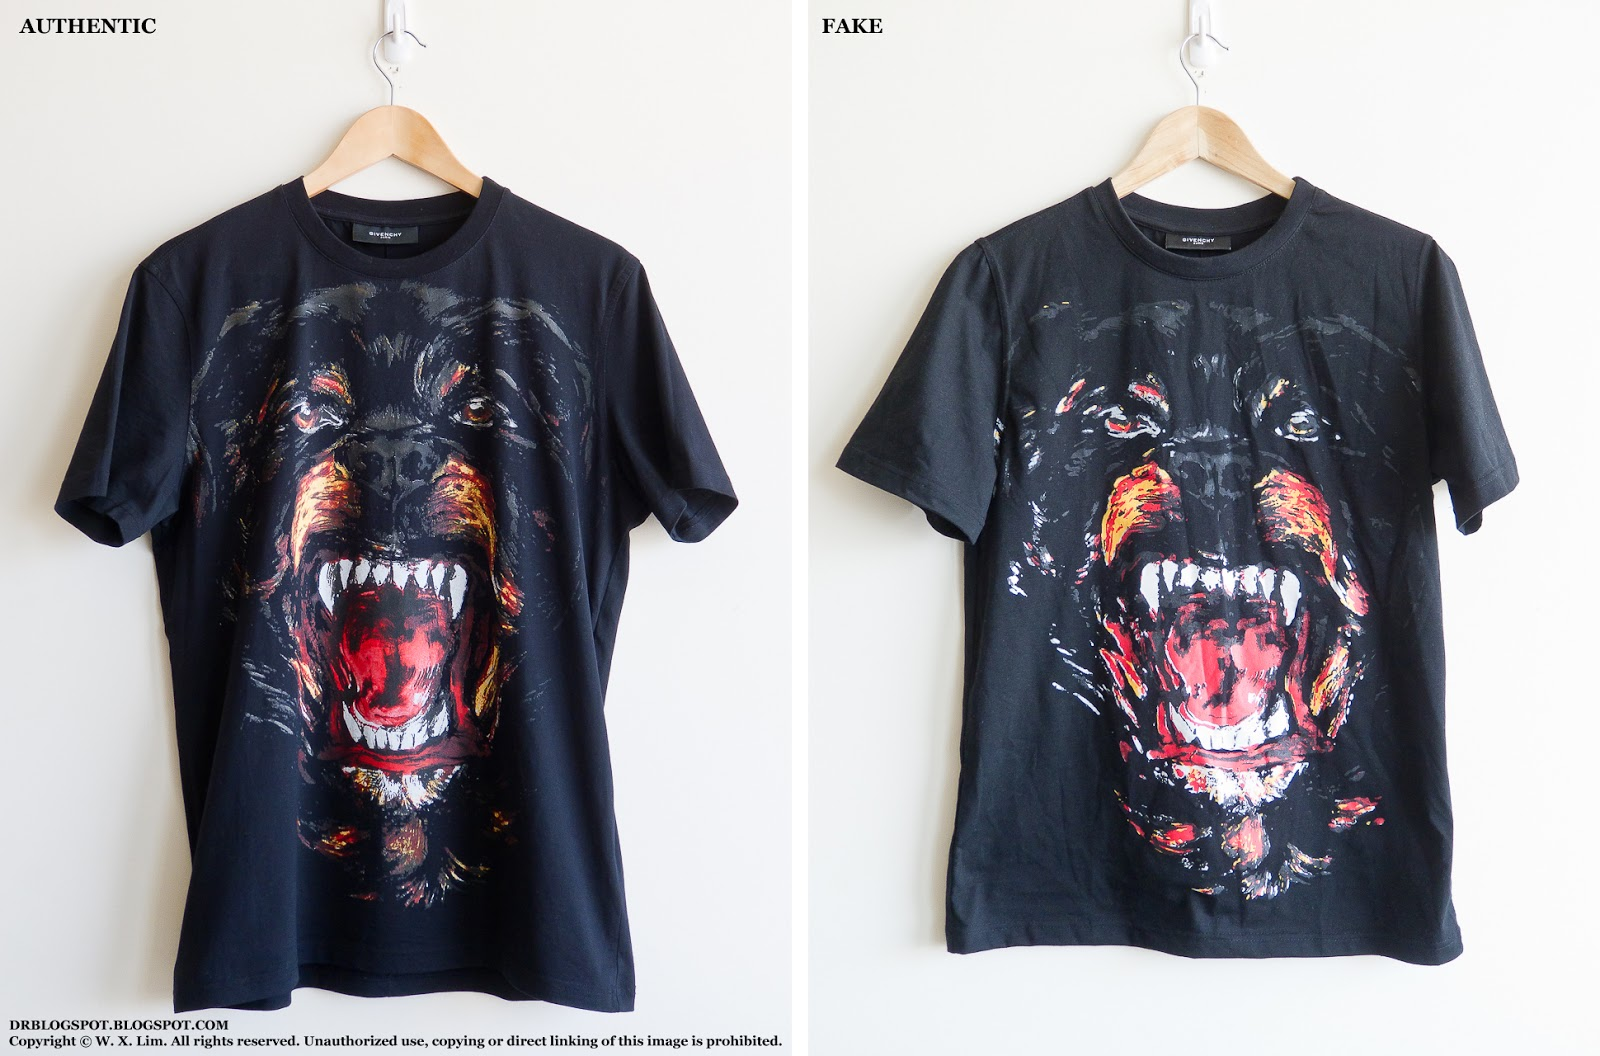 3bd52bd4 ... Rottweiler Wearing A Shirt: How Do You Tell The Difference Between  Real/fake Givenchy ...